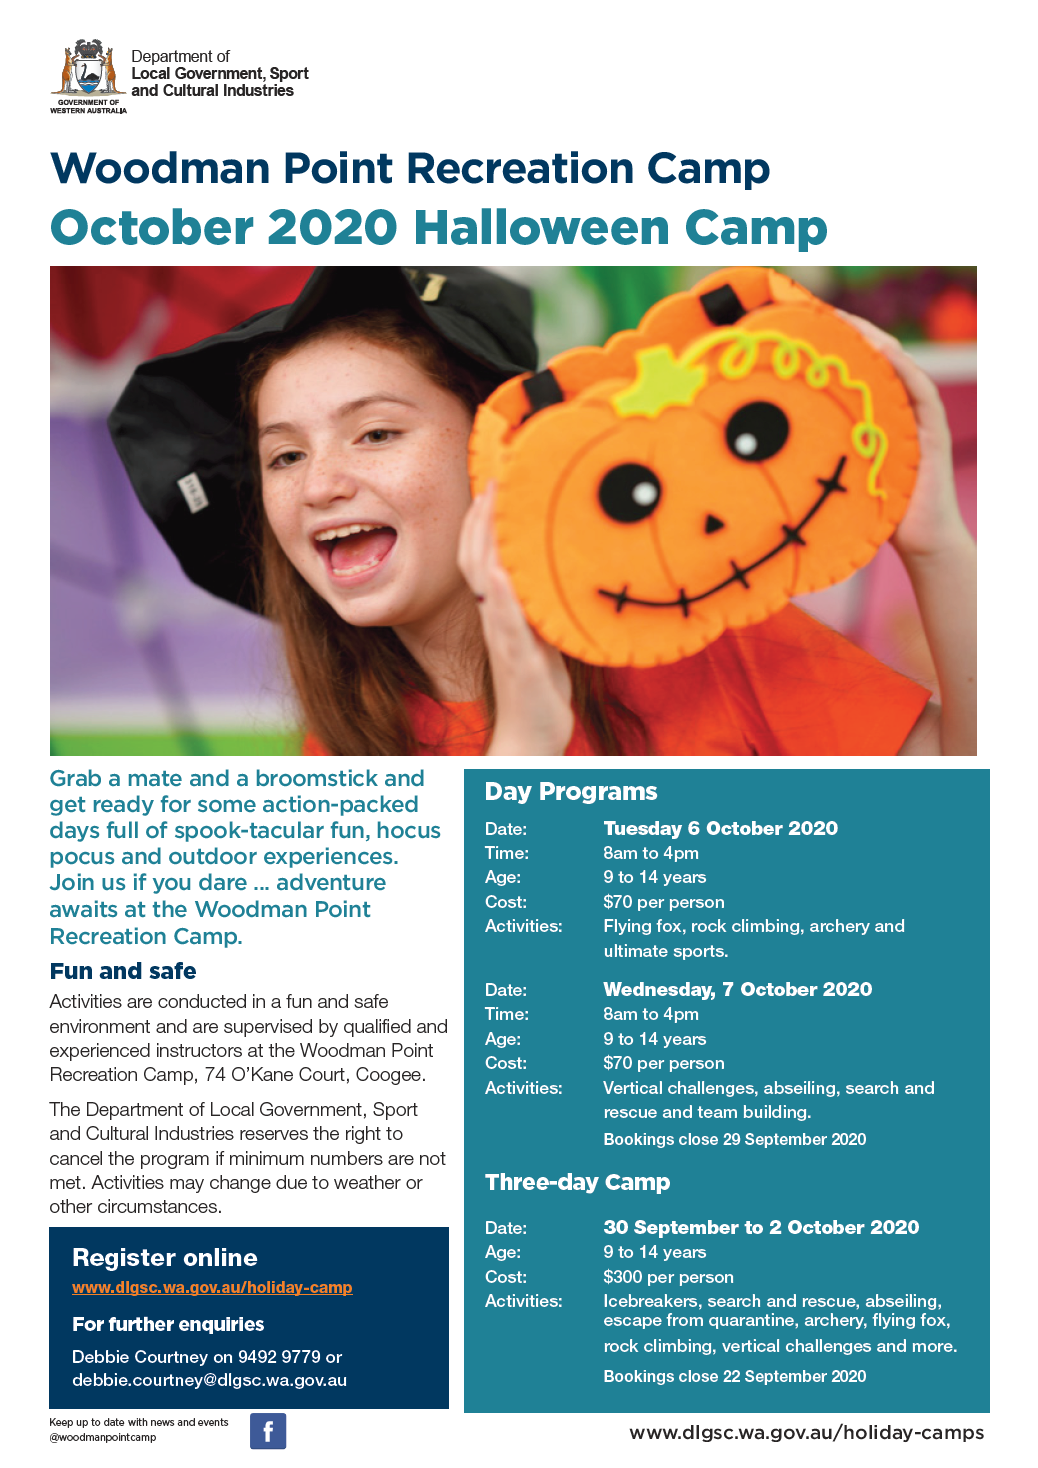 Woodman Point Halloween Programs October 2020 flyer